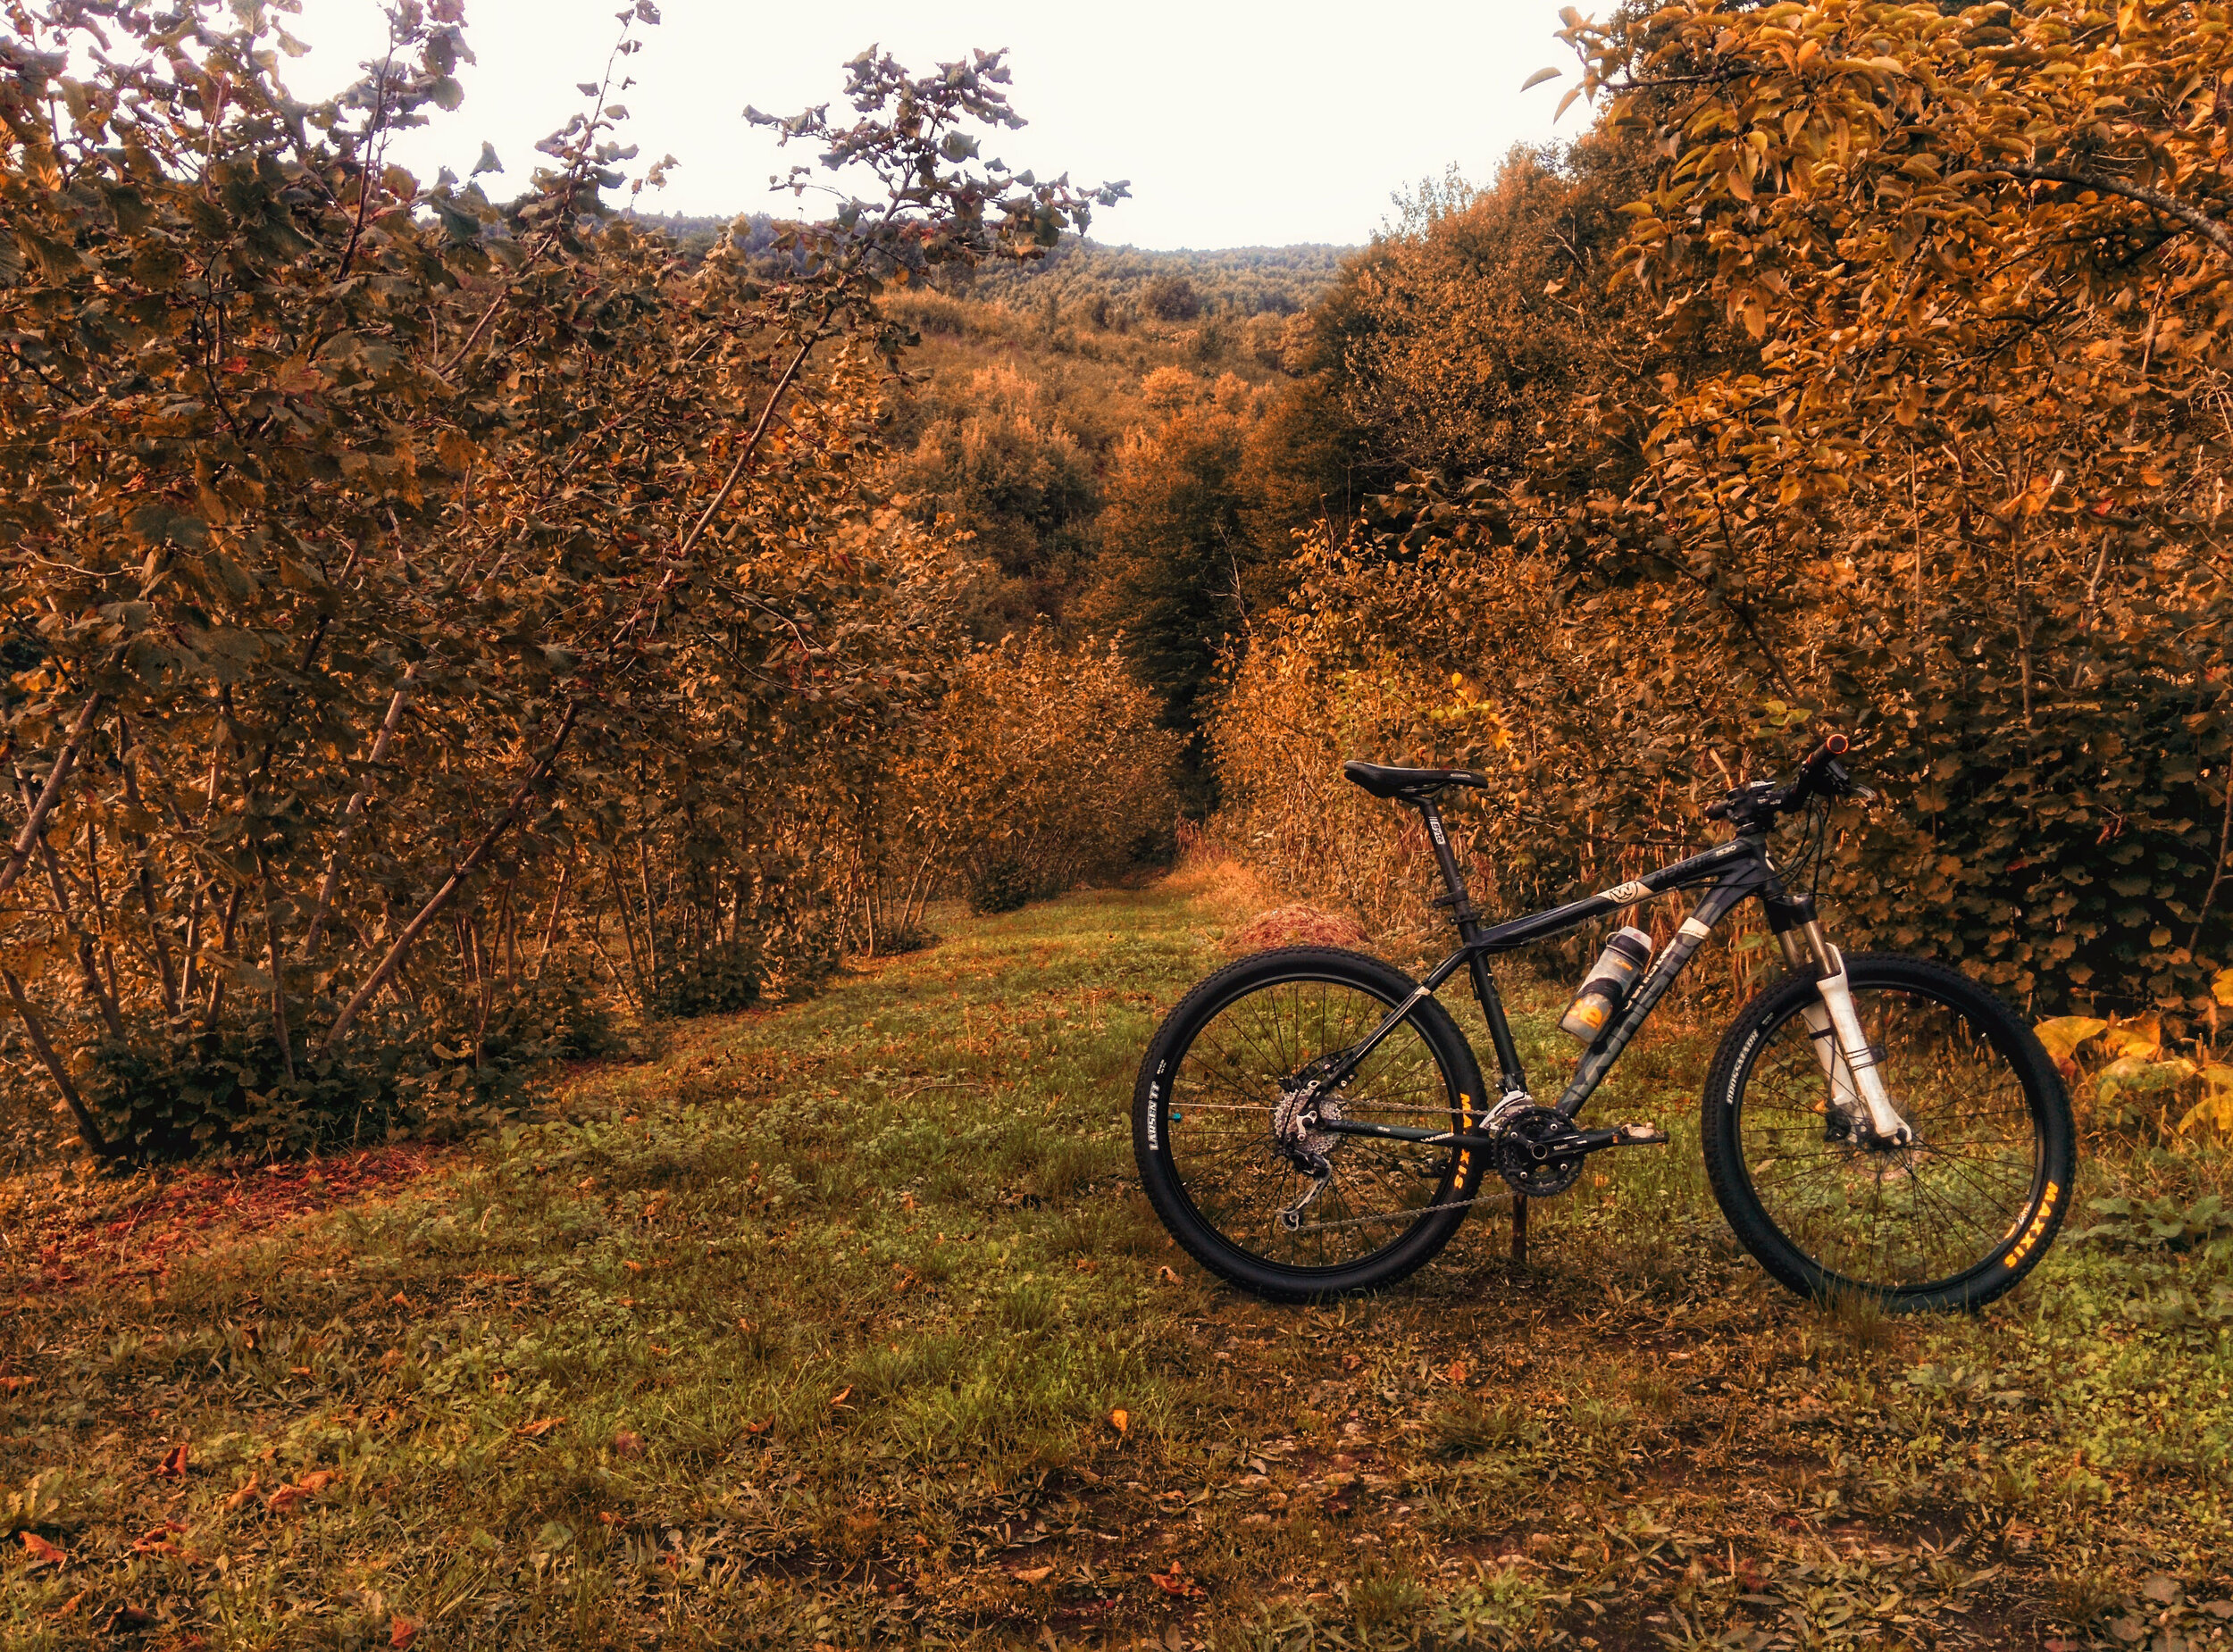 Fall Riding - What to know for the 2019 Hunting Season